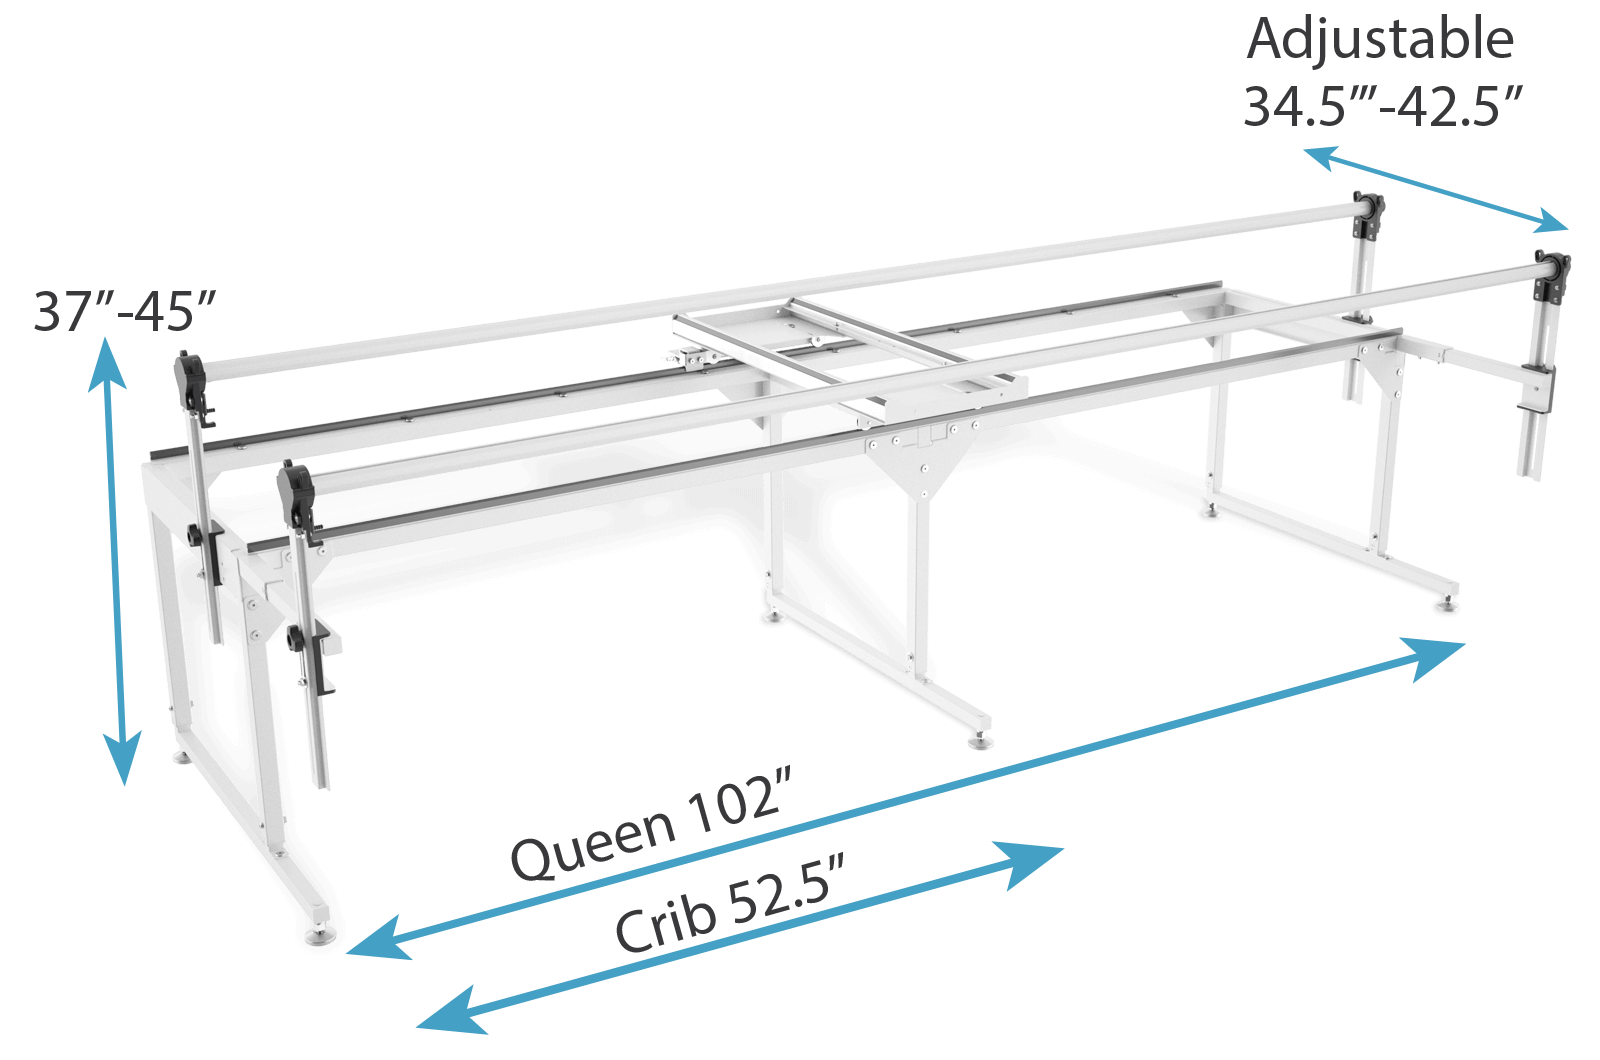 Q-Zone Queen frame size